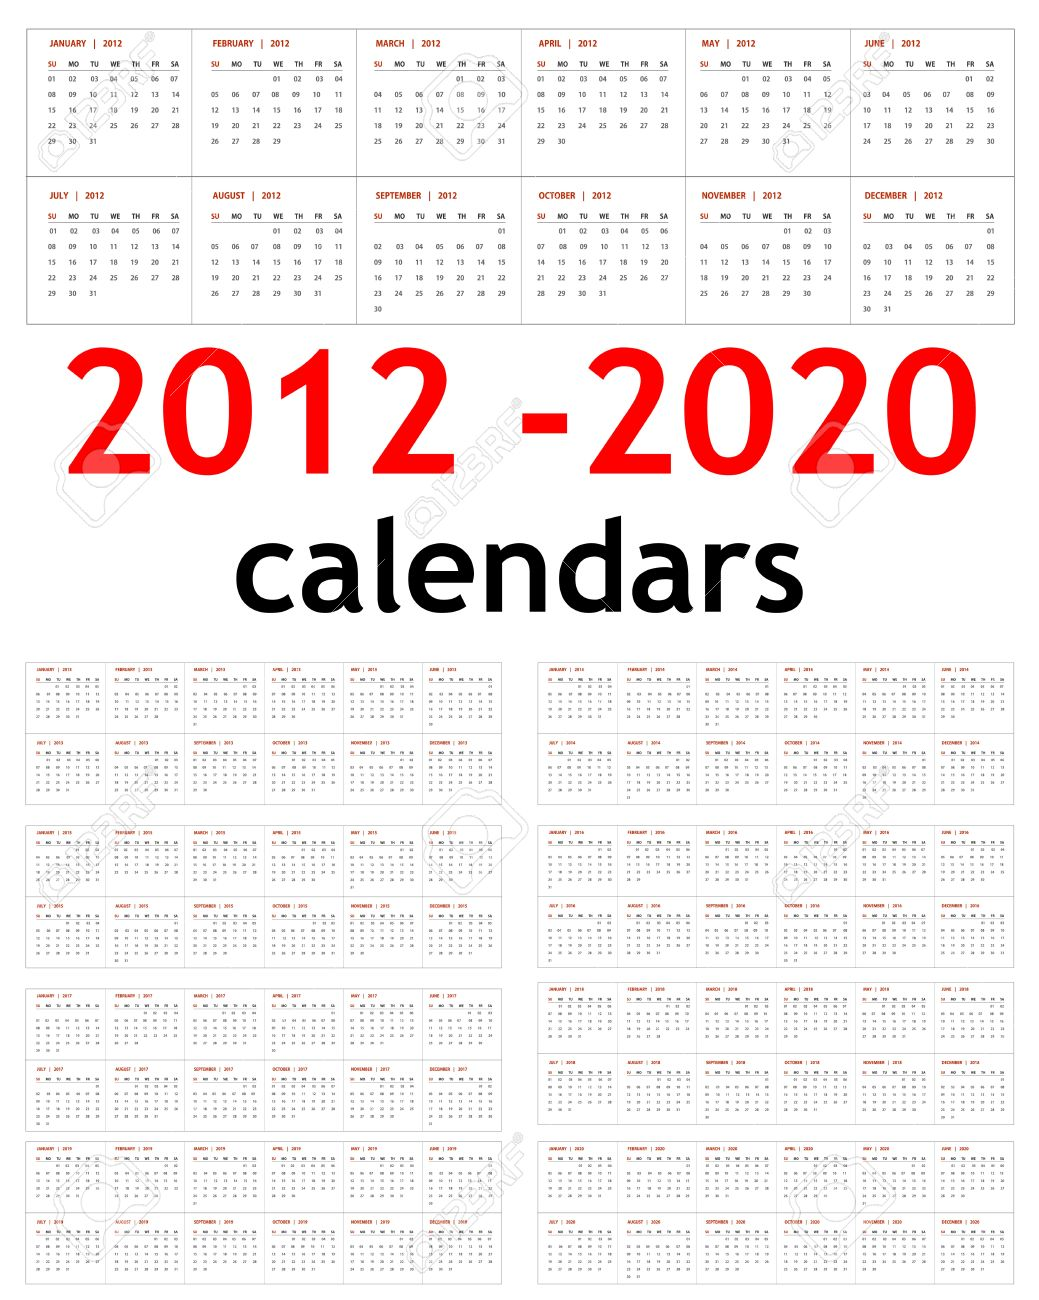 2013 And 2014 And 2020 Calendar New Year 2012, 2013, 2014, 2015, 2016, 2017, 2018, 2019,.. Royalty